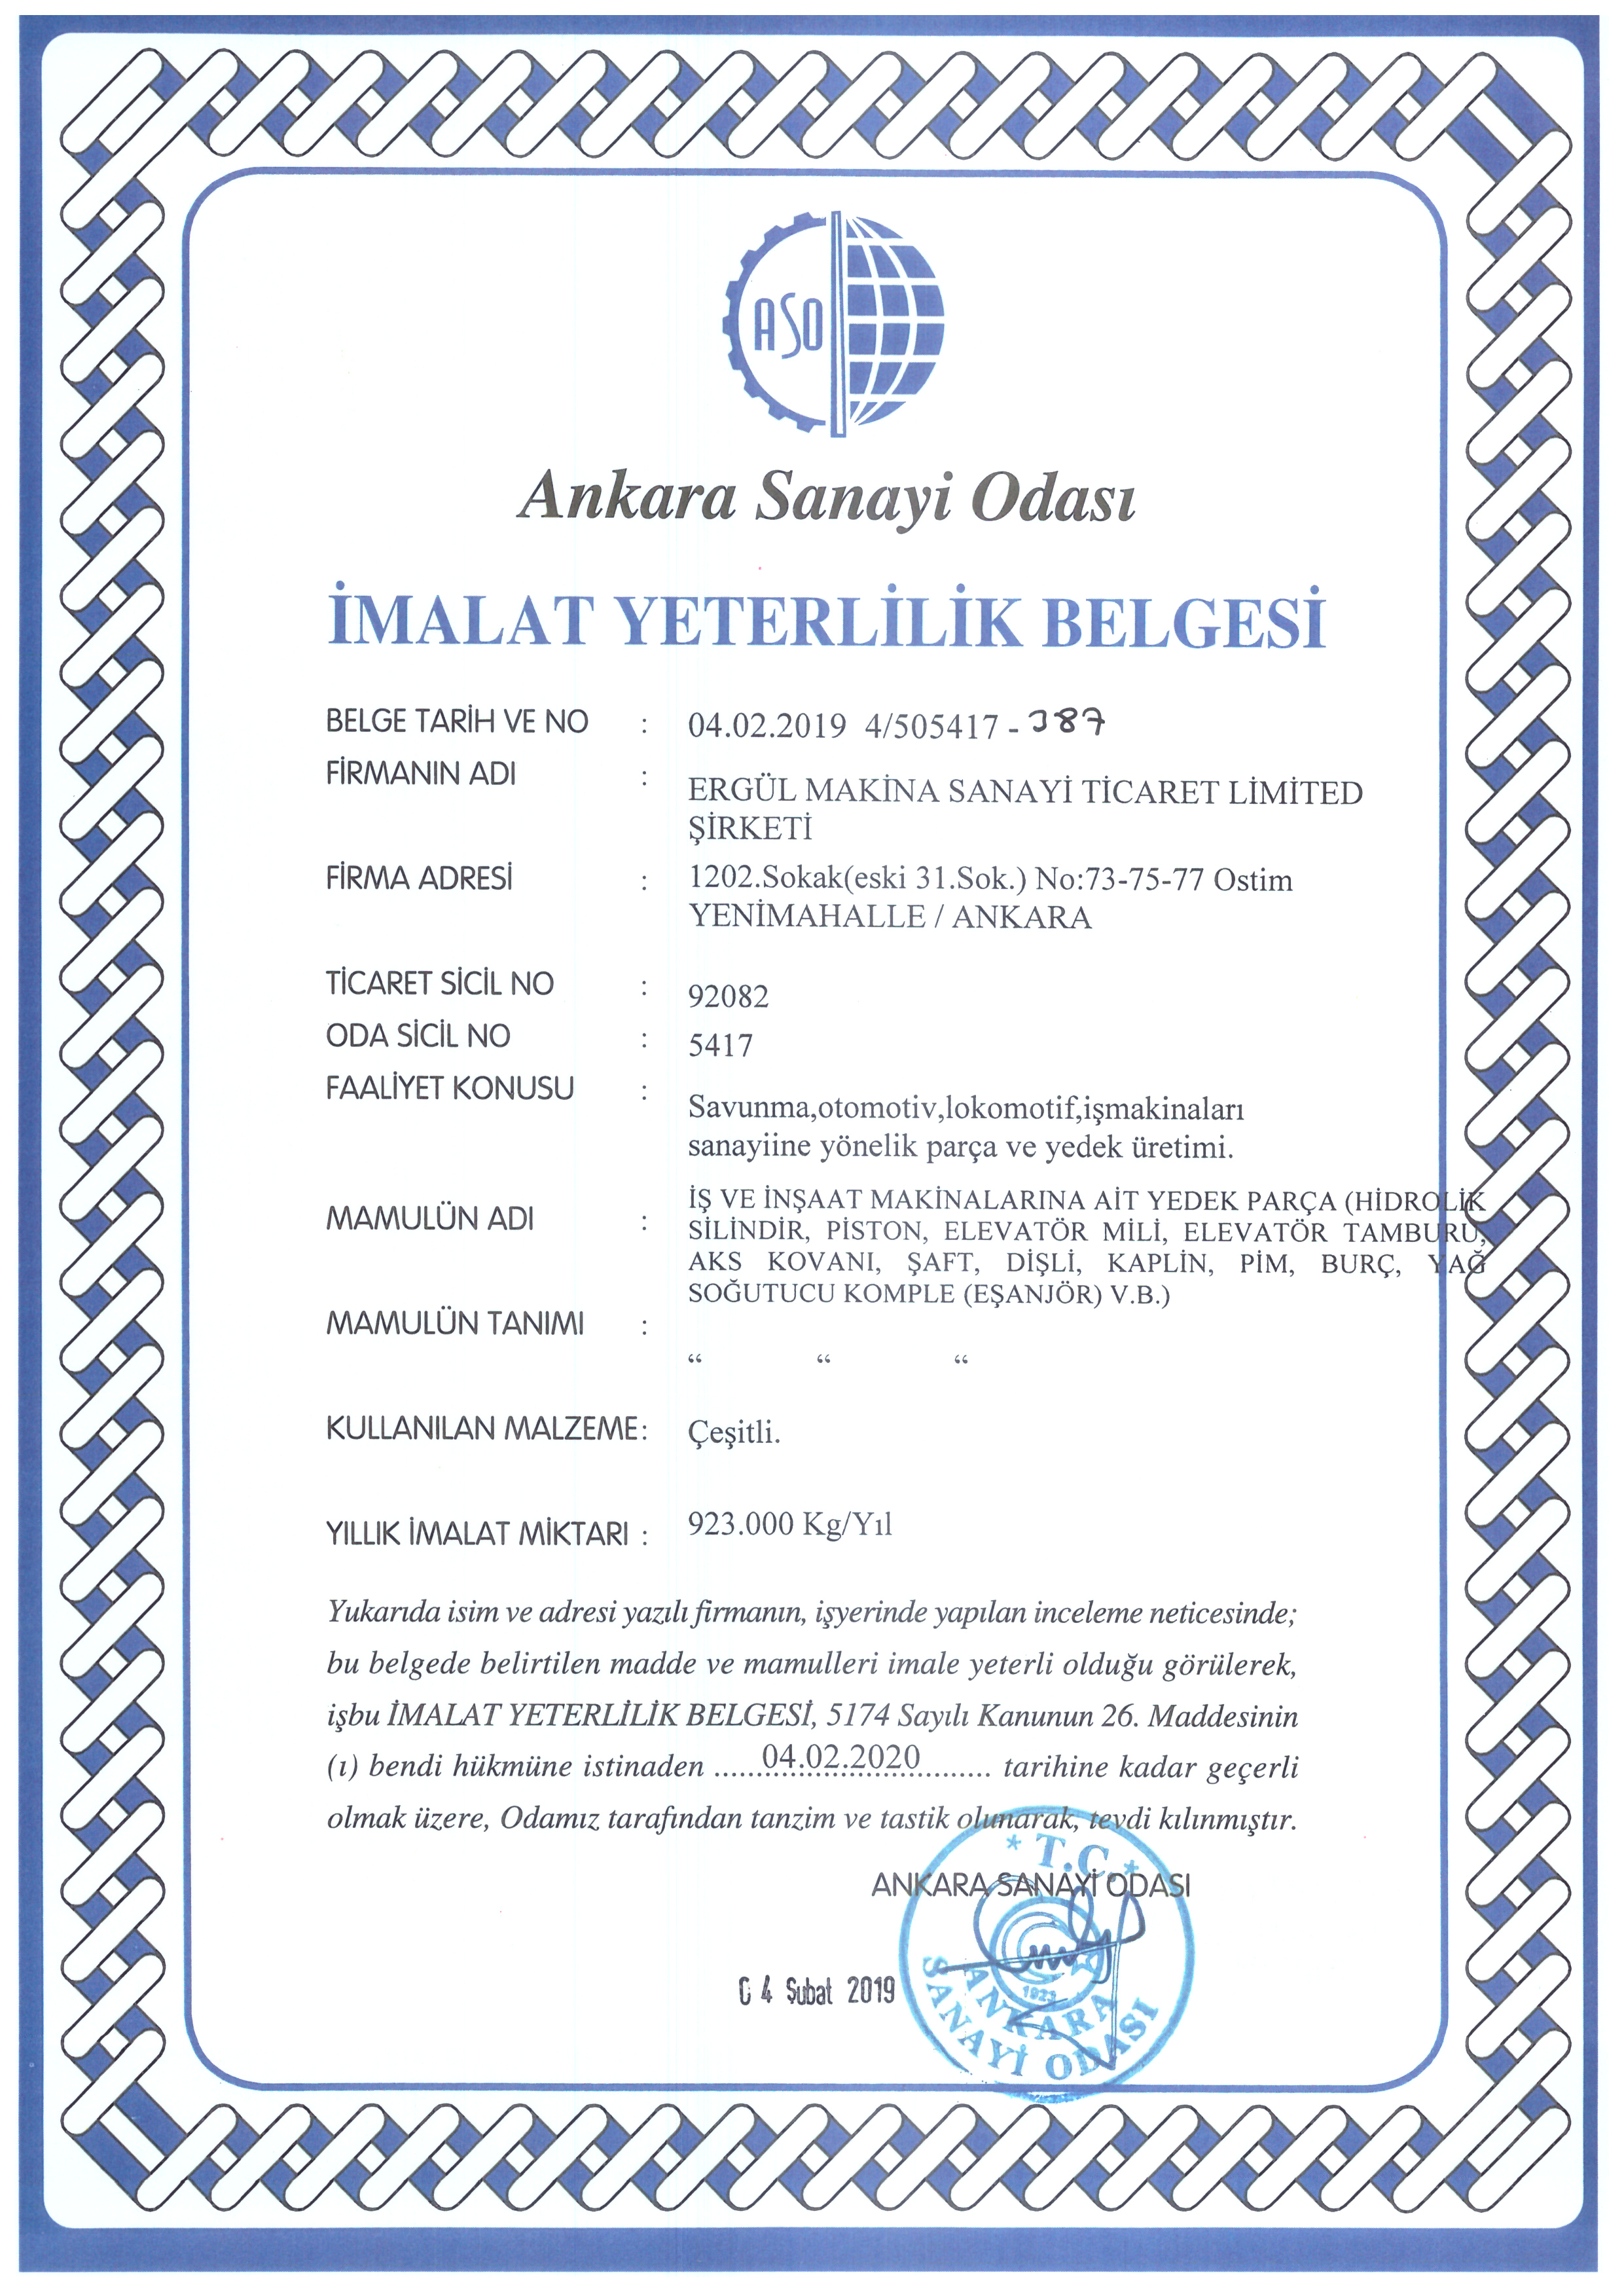 Manufacturing Qualification Certificate (Turkish)